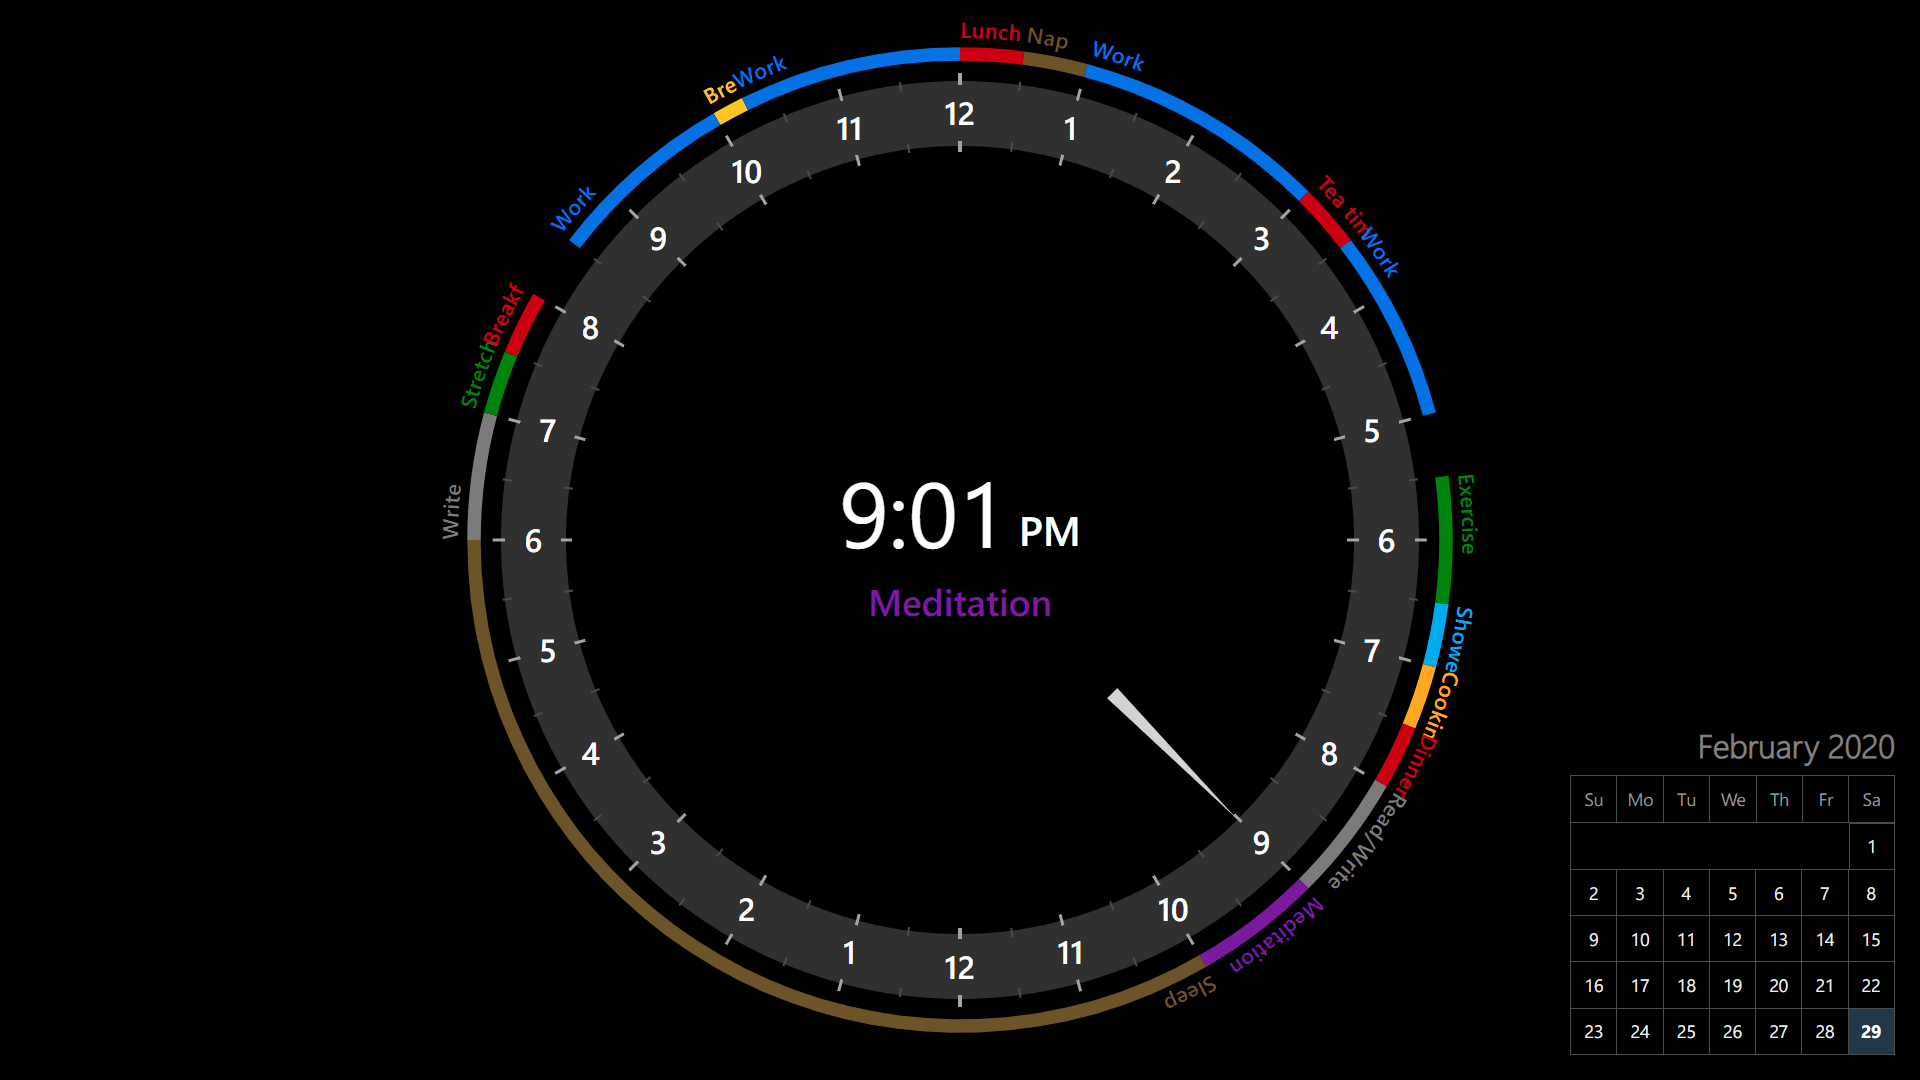 24-hour Analog Clock With daily routines